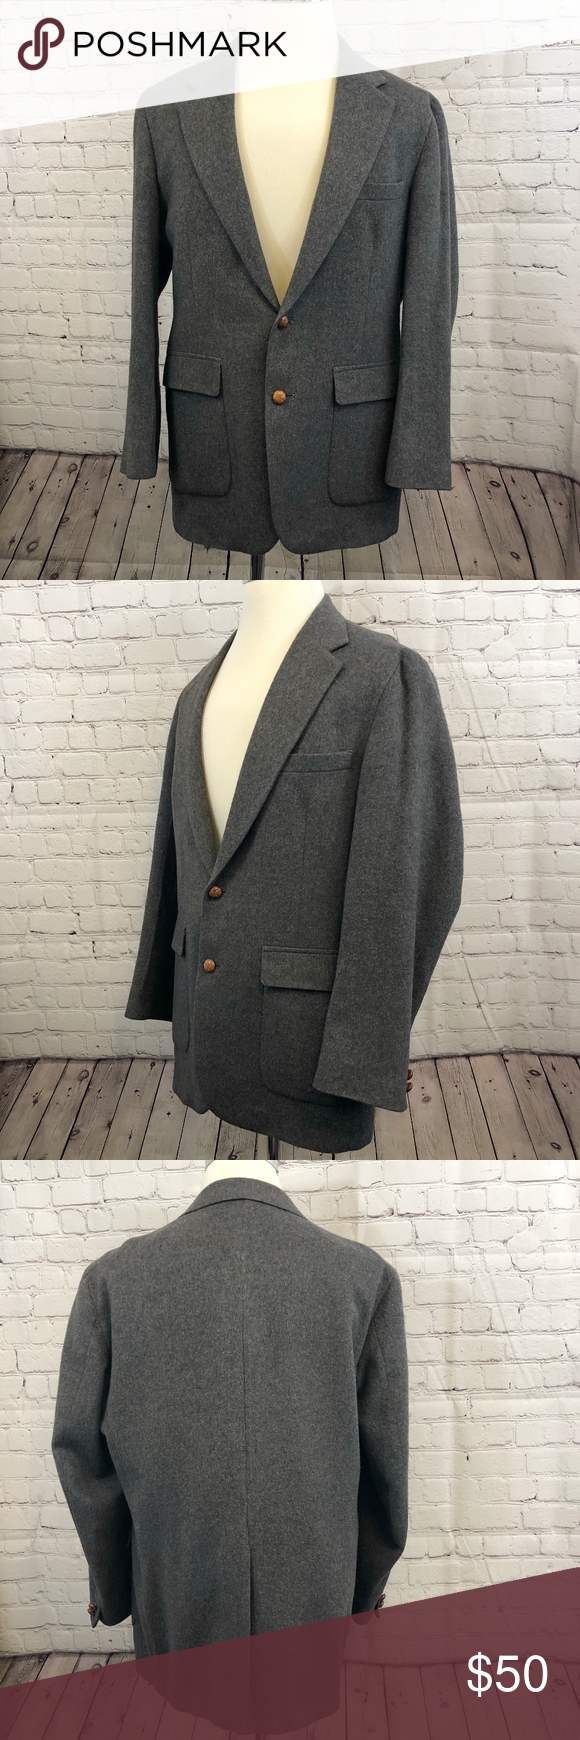 Gray Men's 2Button Sports Coat with Single Vent Sport